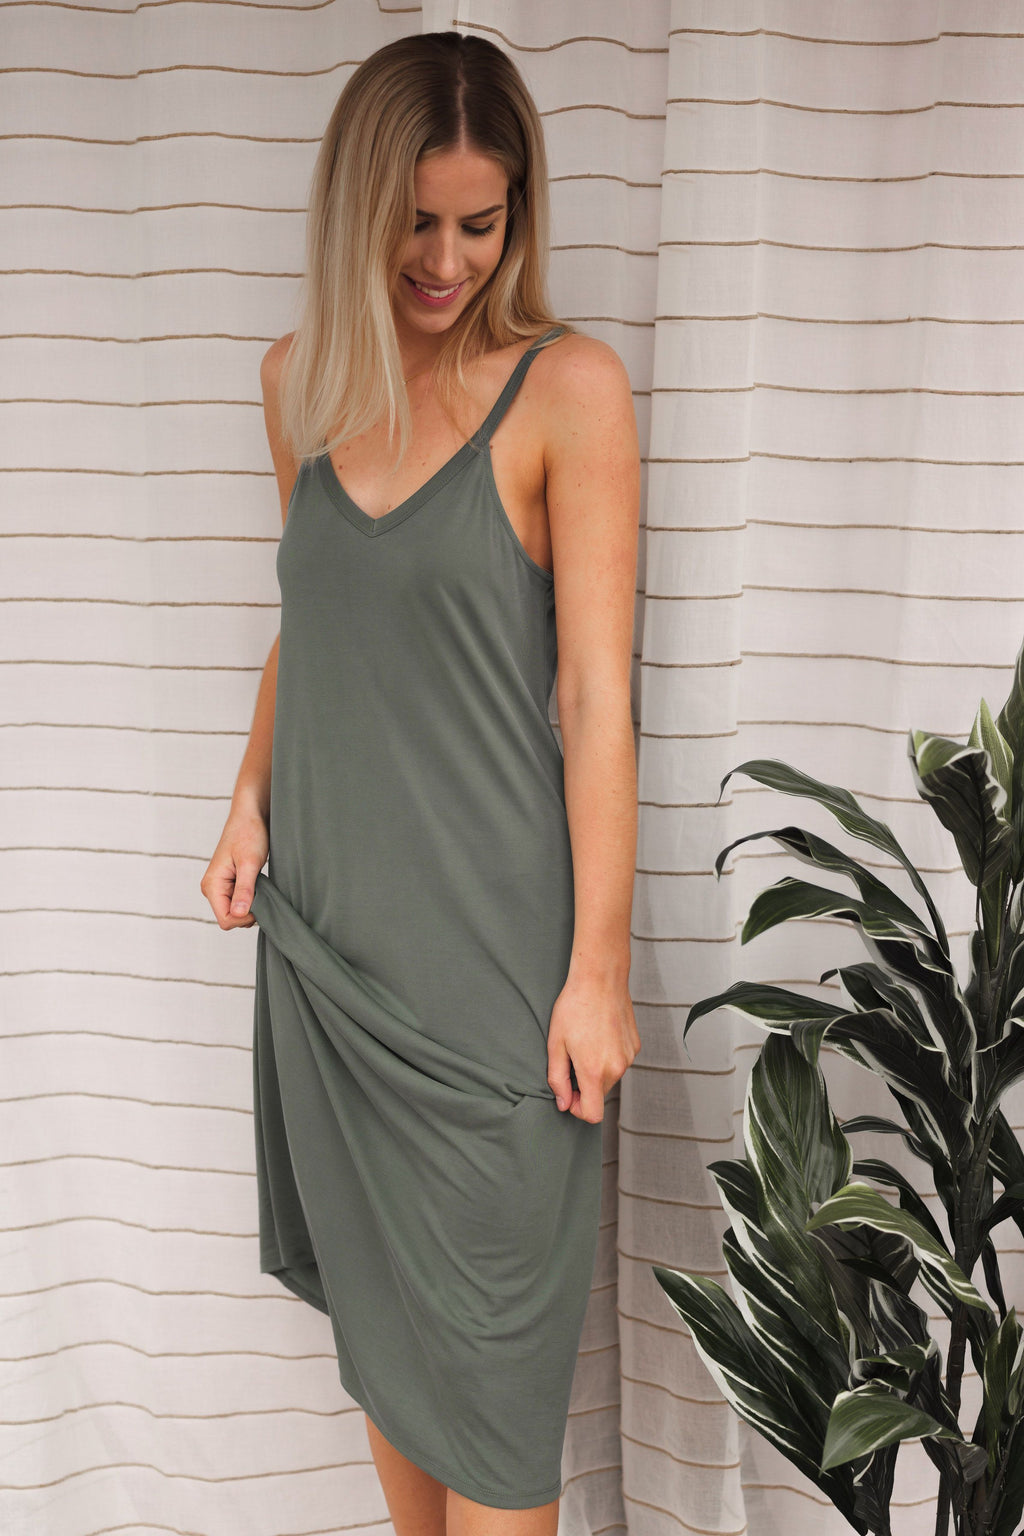 Something About You Maxi Dress